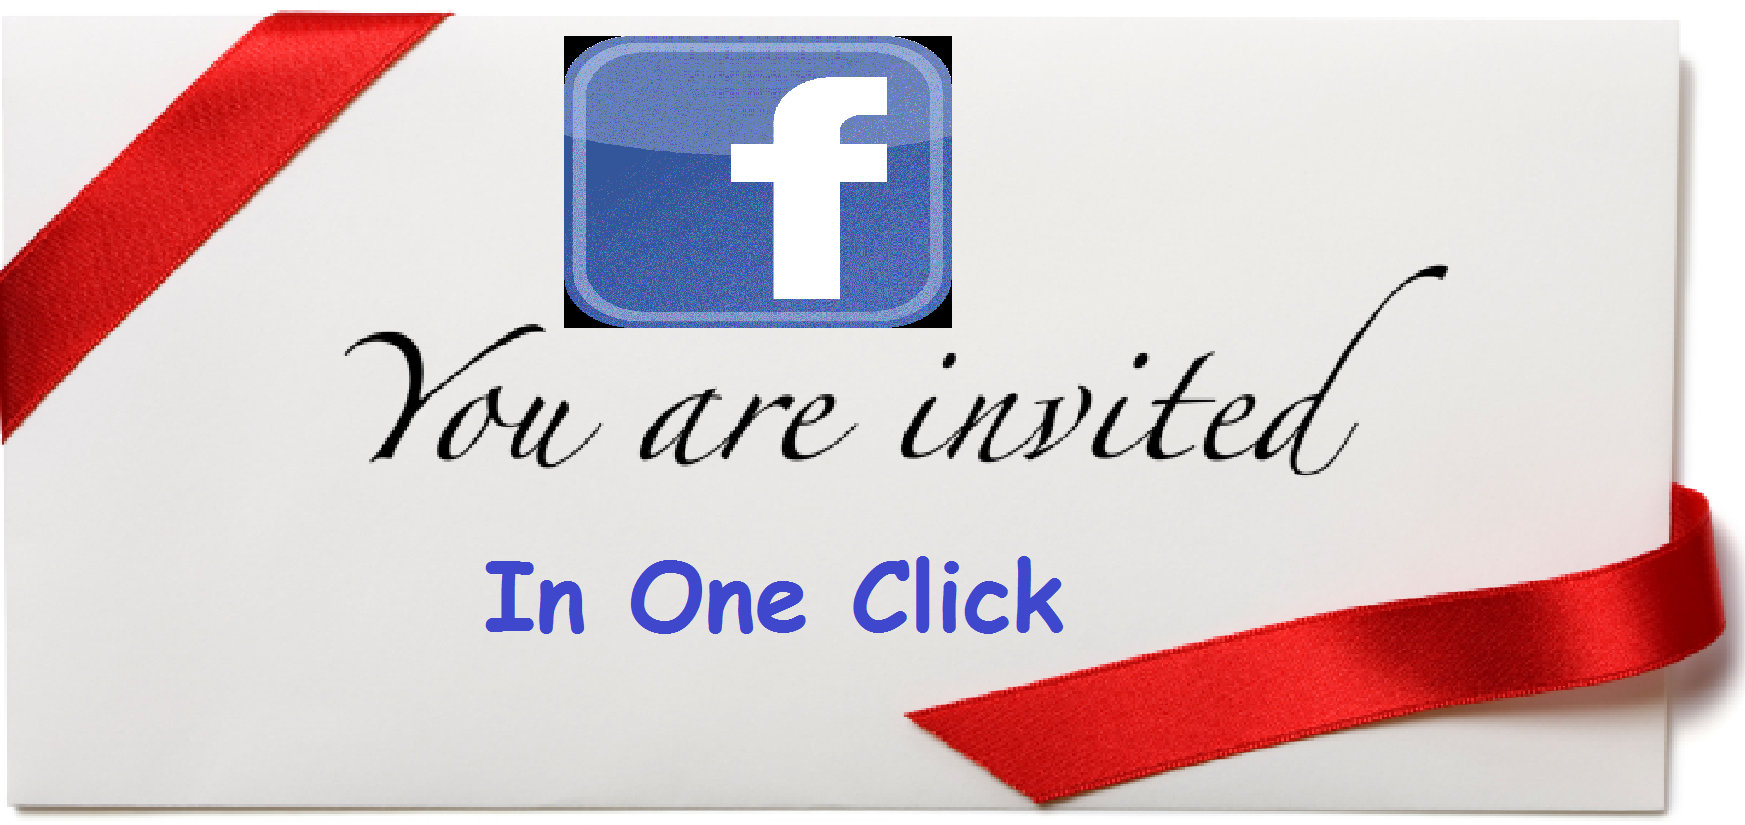 Invite all Friends On Facebook In One Click